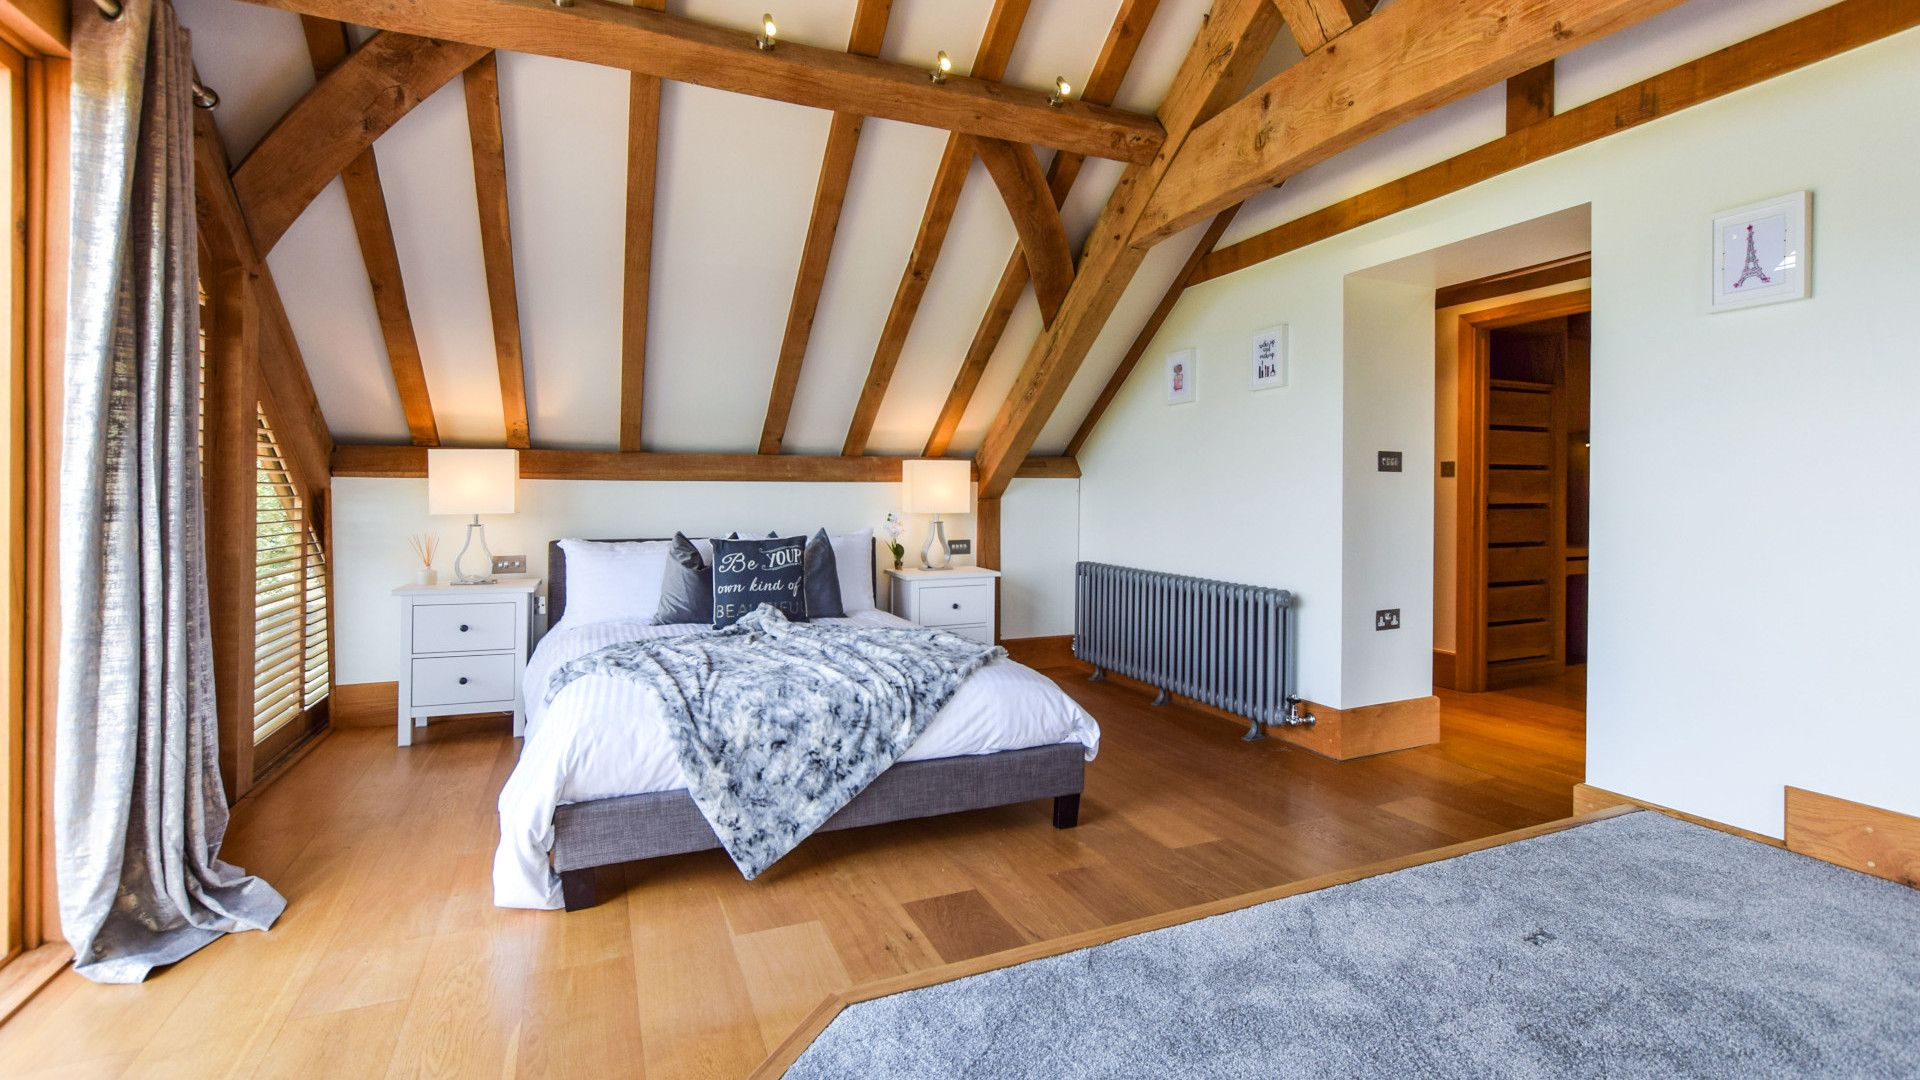 Bedroom 1 with king size bed, Old Oak House, Bolthole Retreats